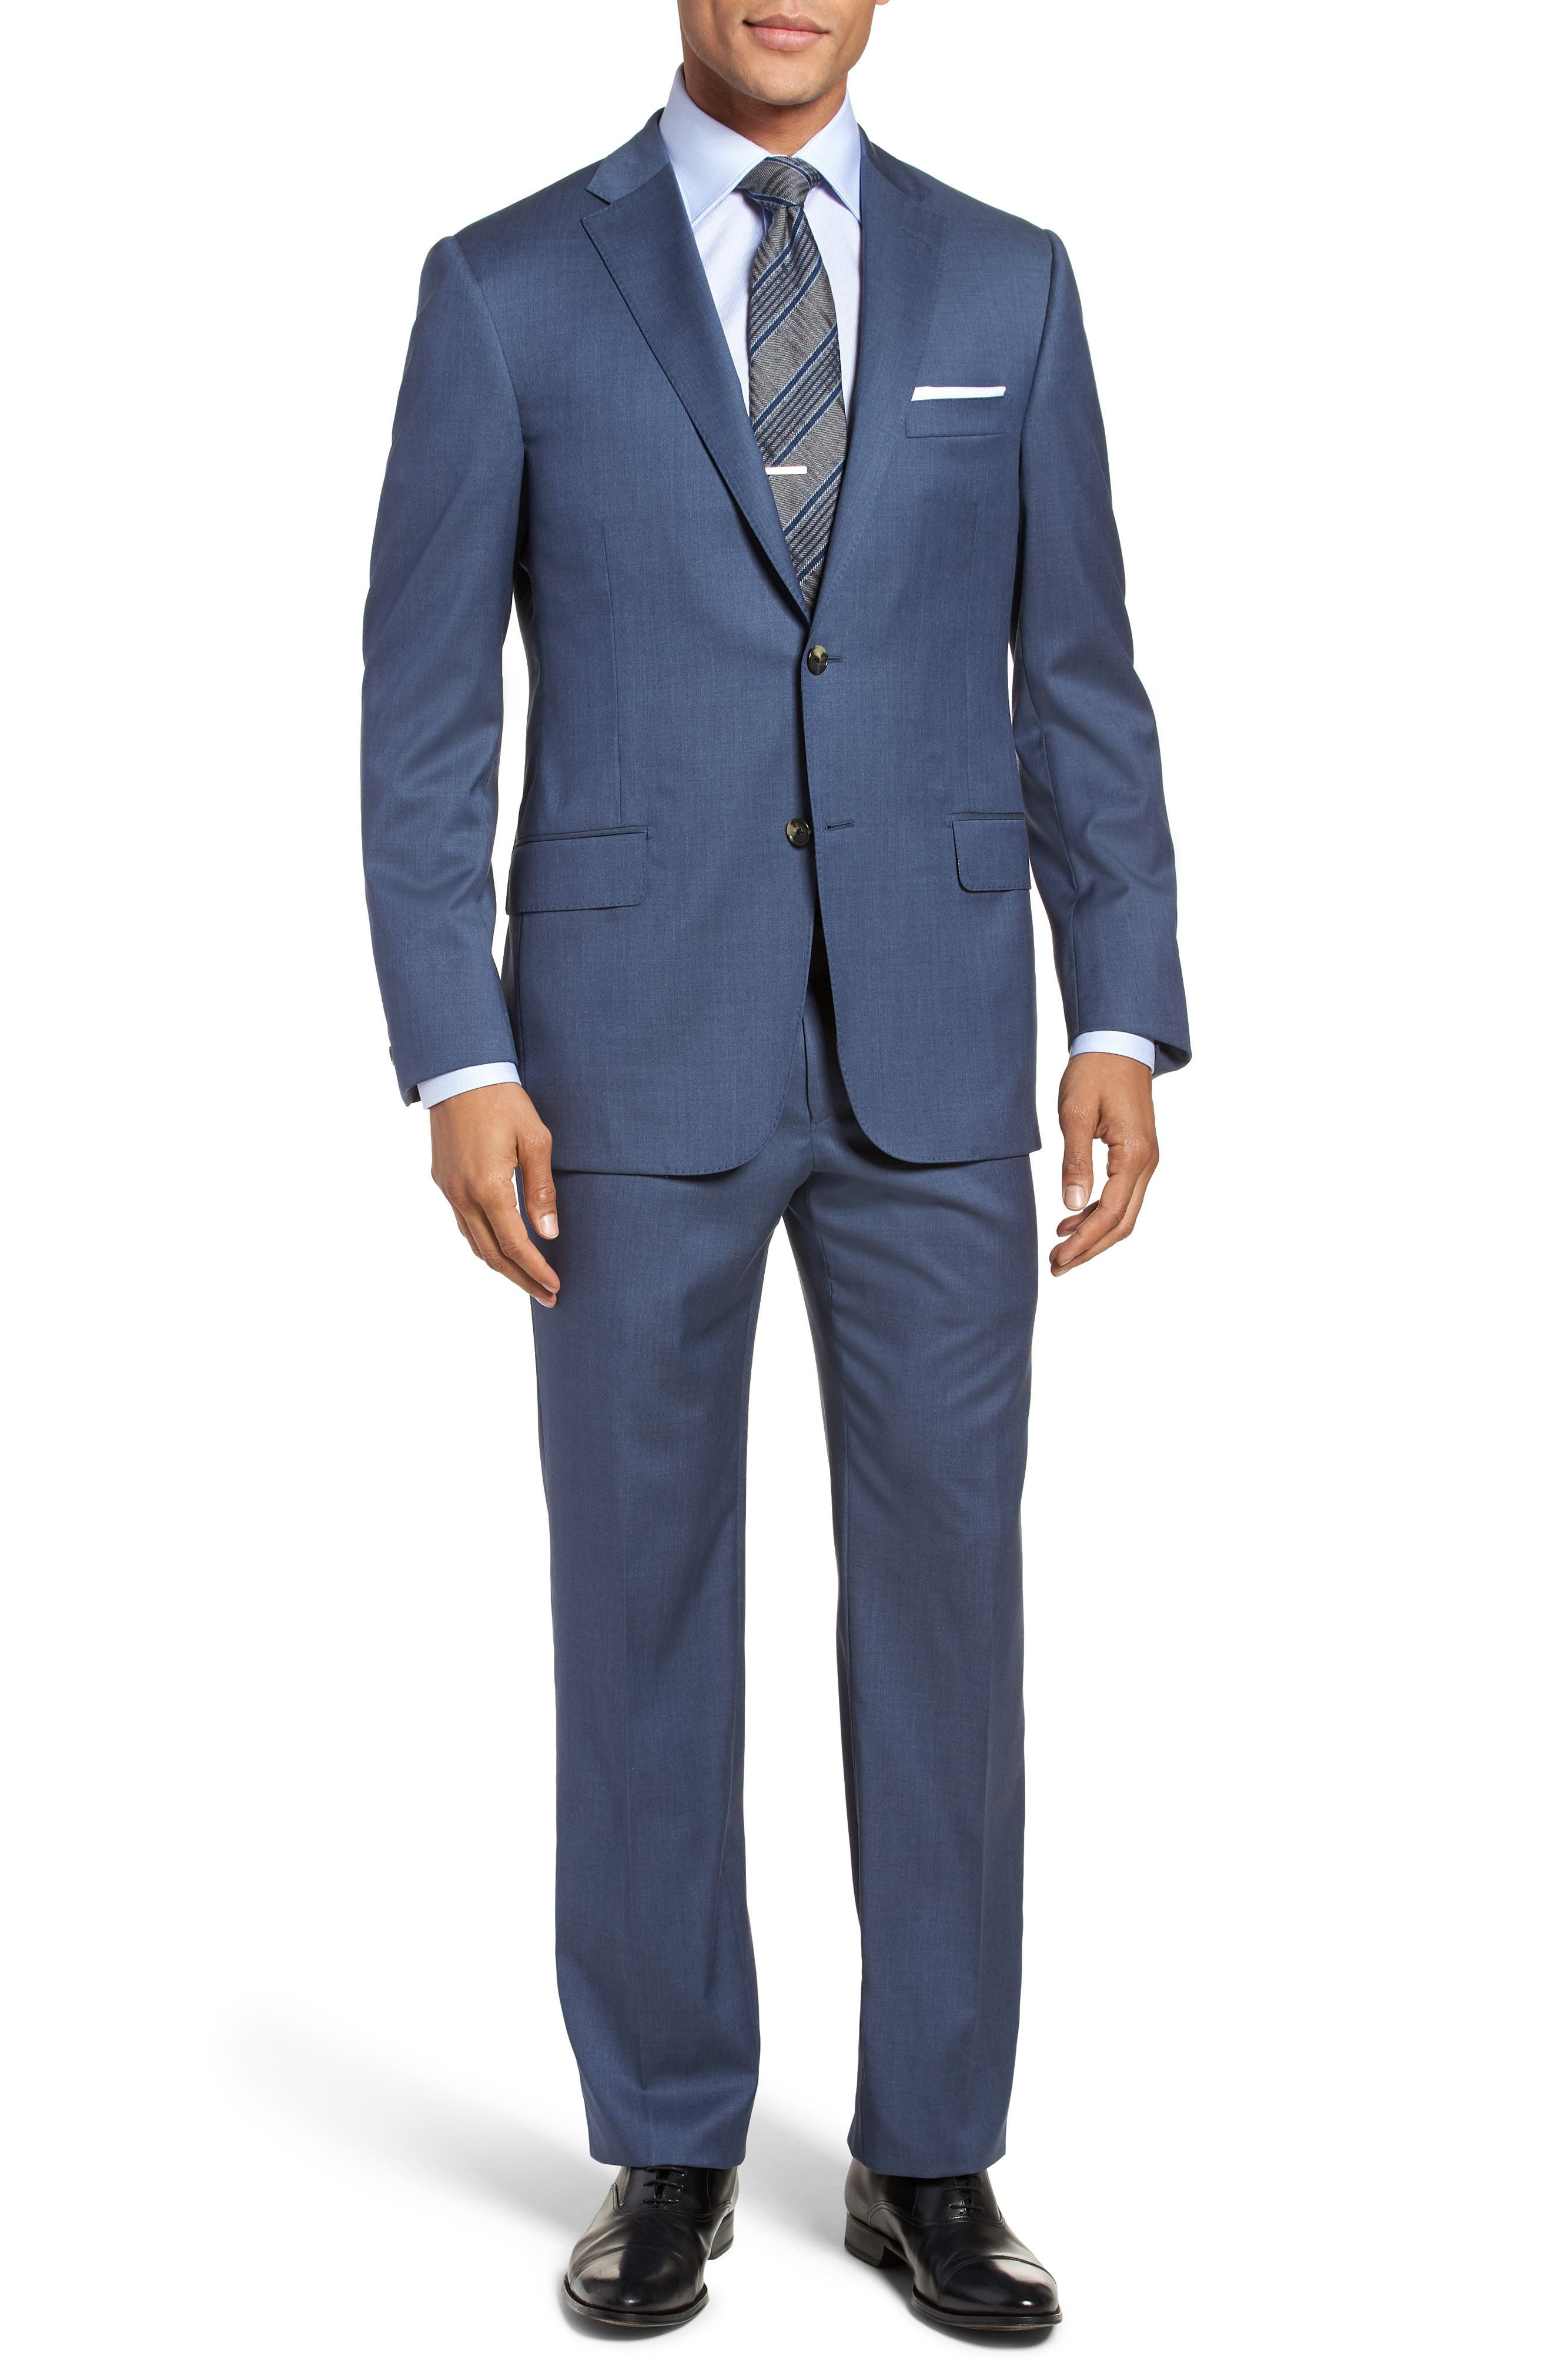 Alternate Image 1 Selected - Hickey Freeman Classic B Fit Solid Wool Suit